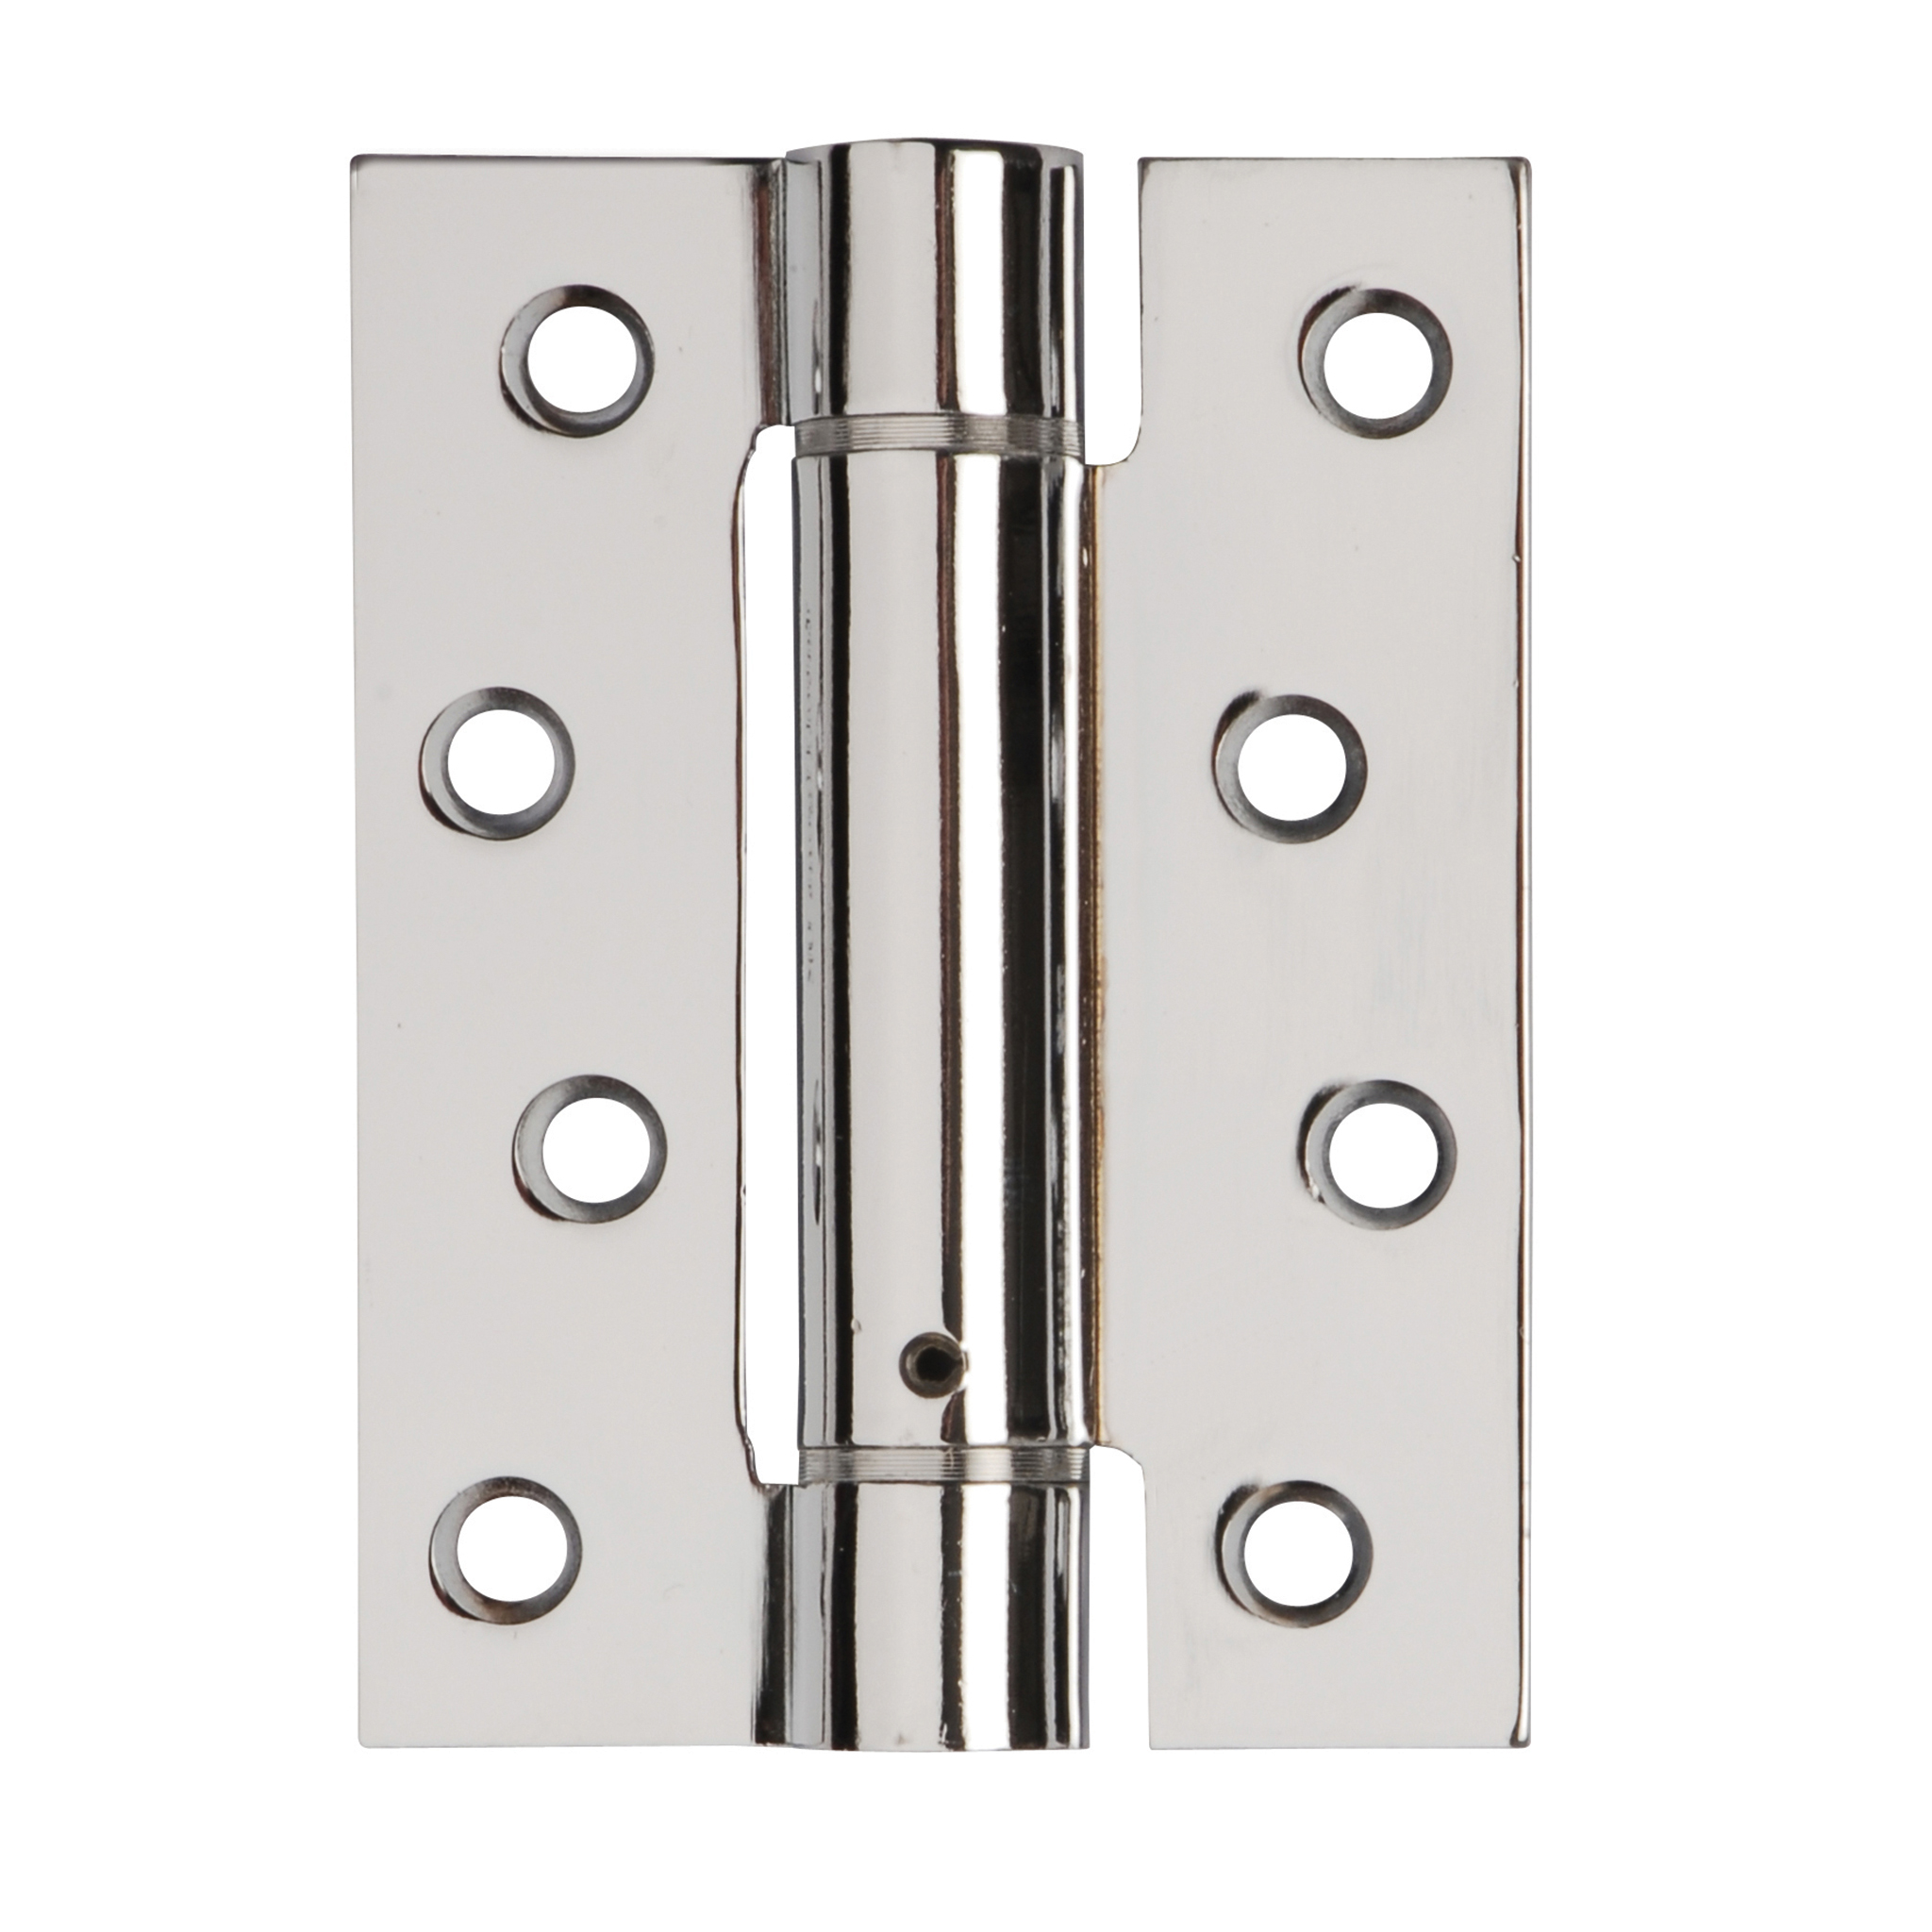 ... Door Hinges Polished Chrome Plated 102 X 76mm. Previous Next